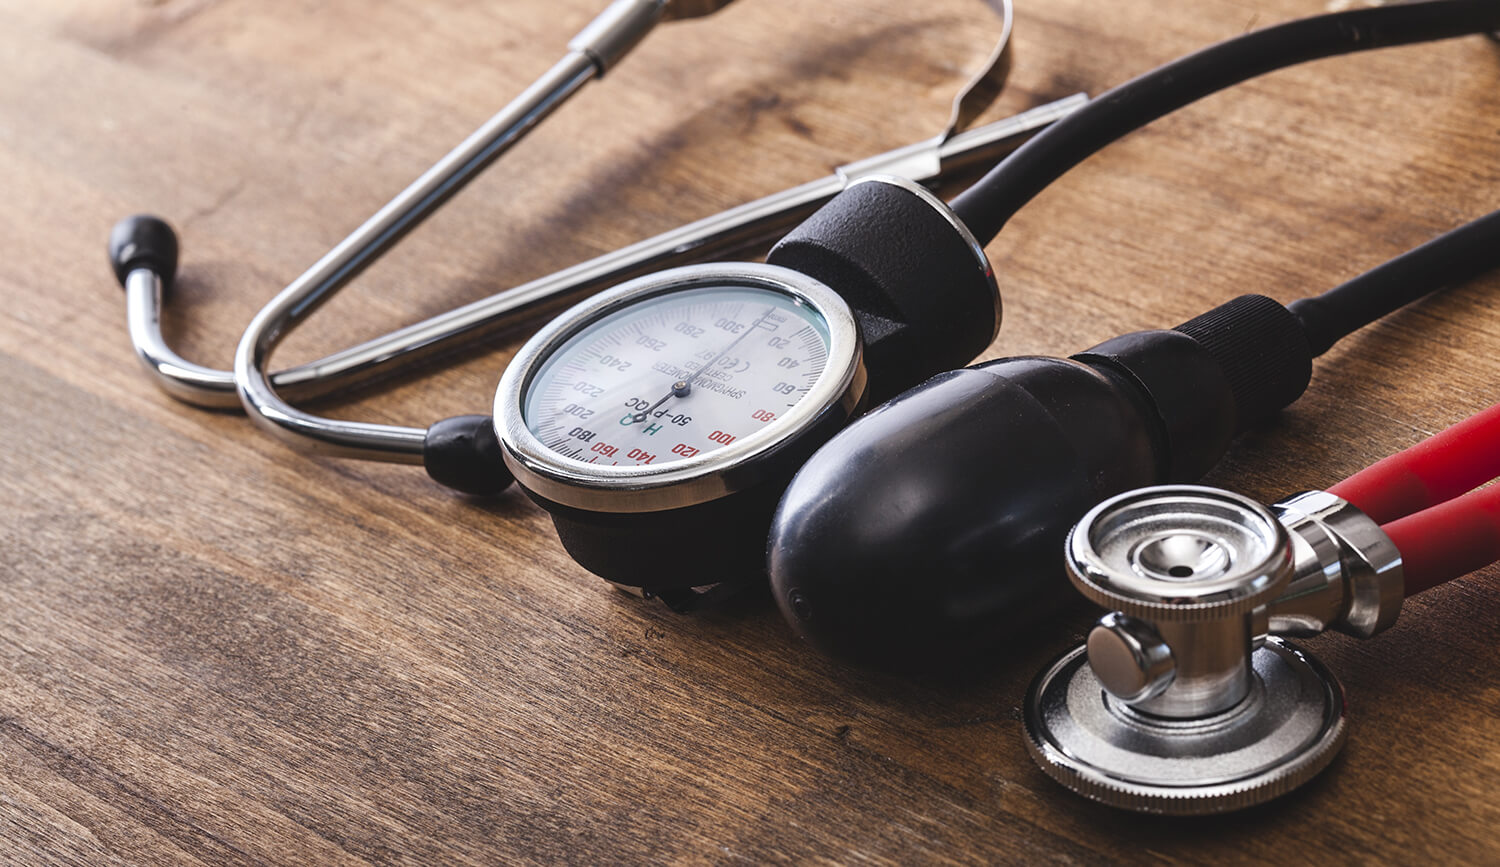 Stethoscope on a wood table